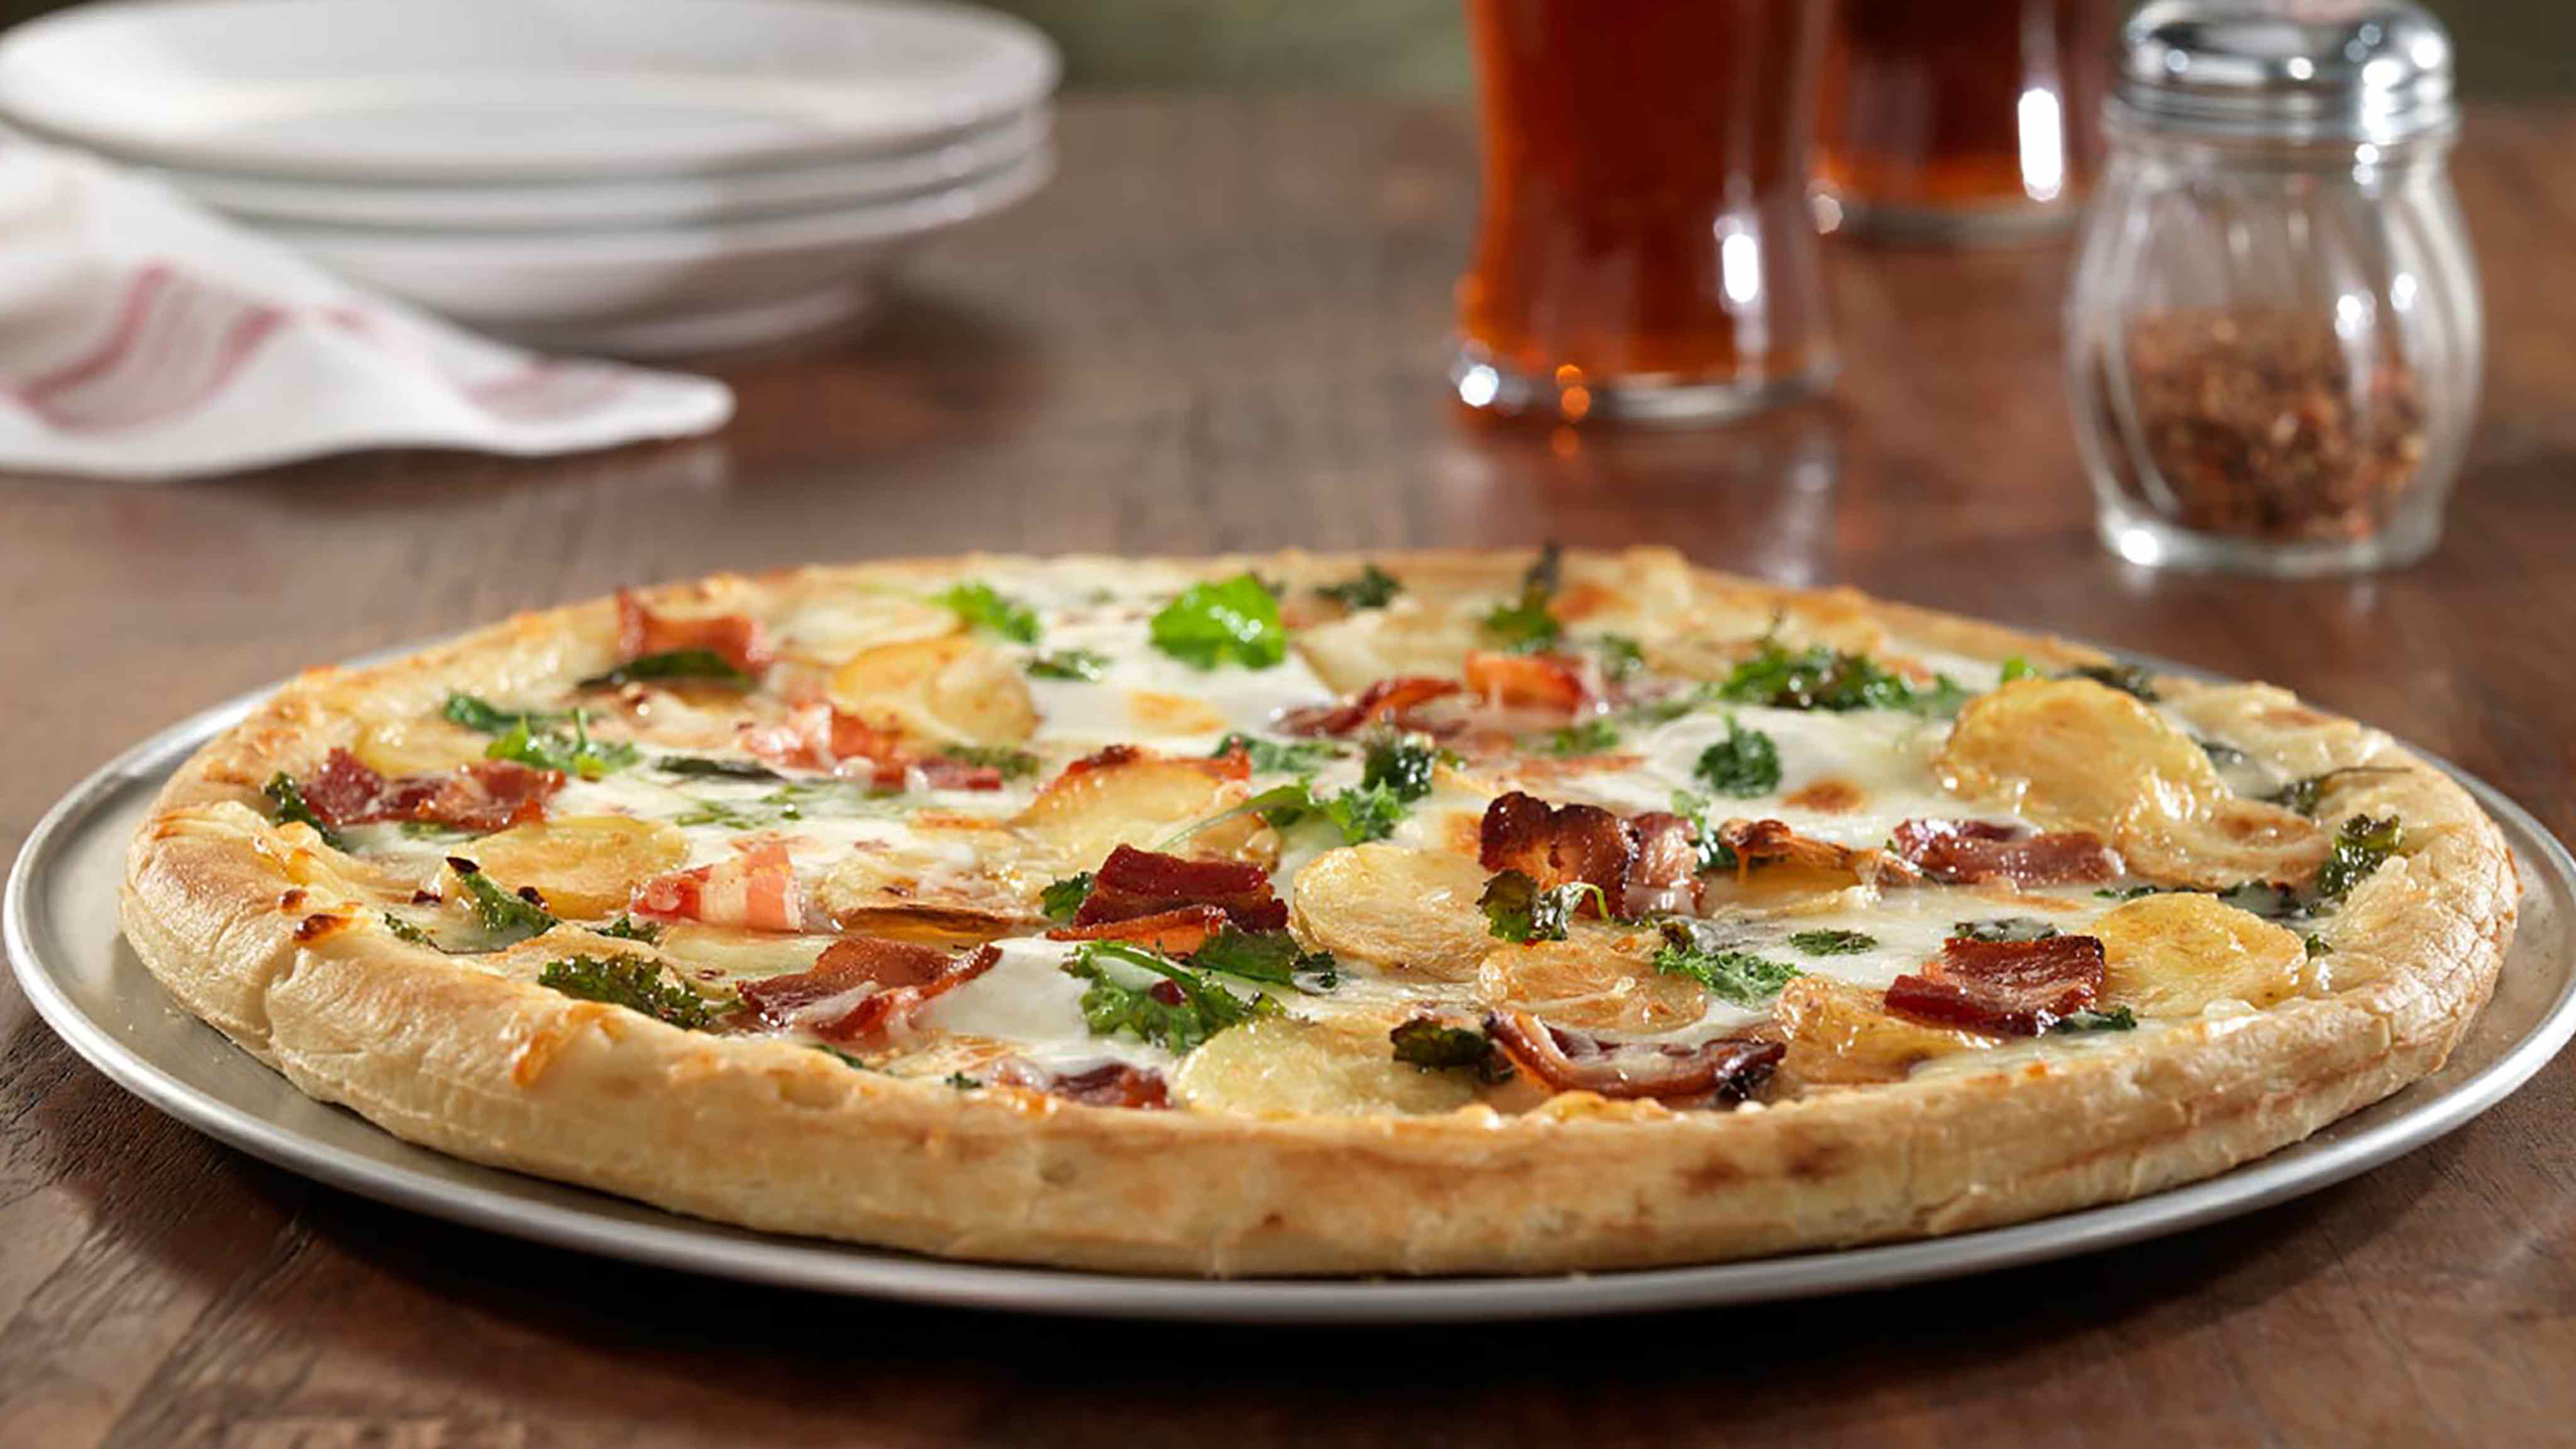 Image for Recipe Bacon, Kale and Potato Pizza with Asiago Cheese